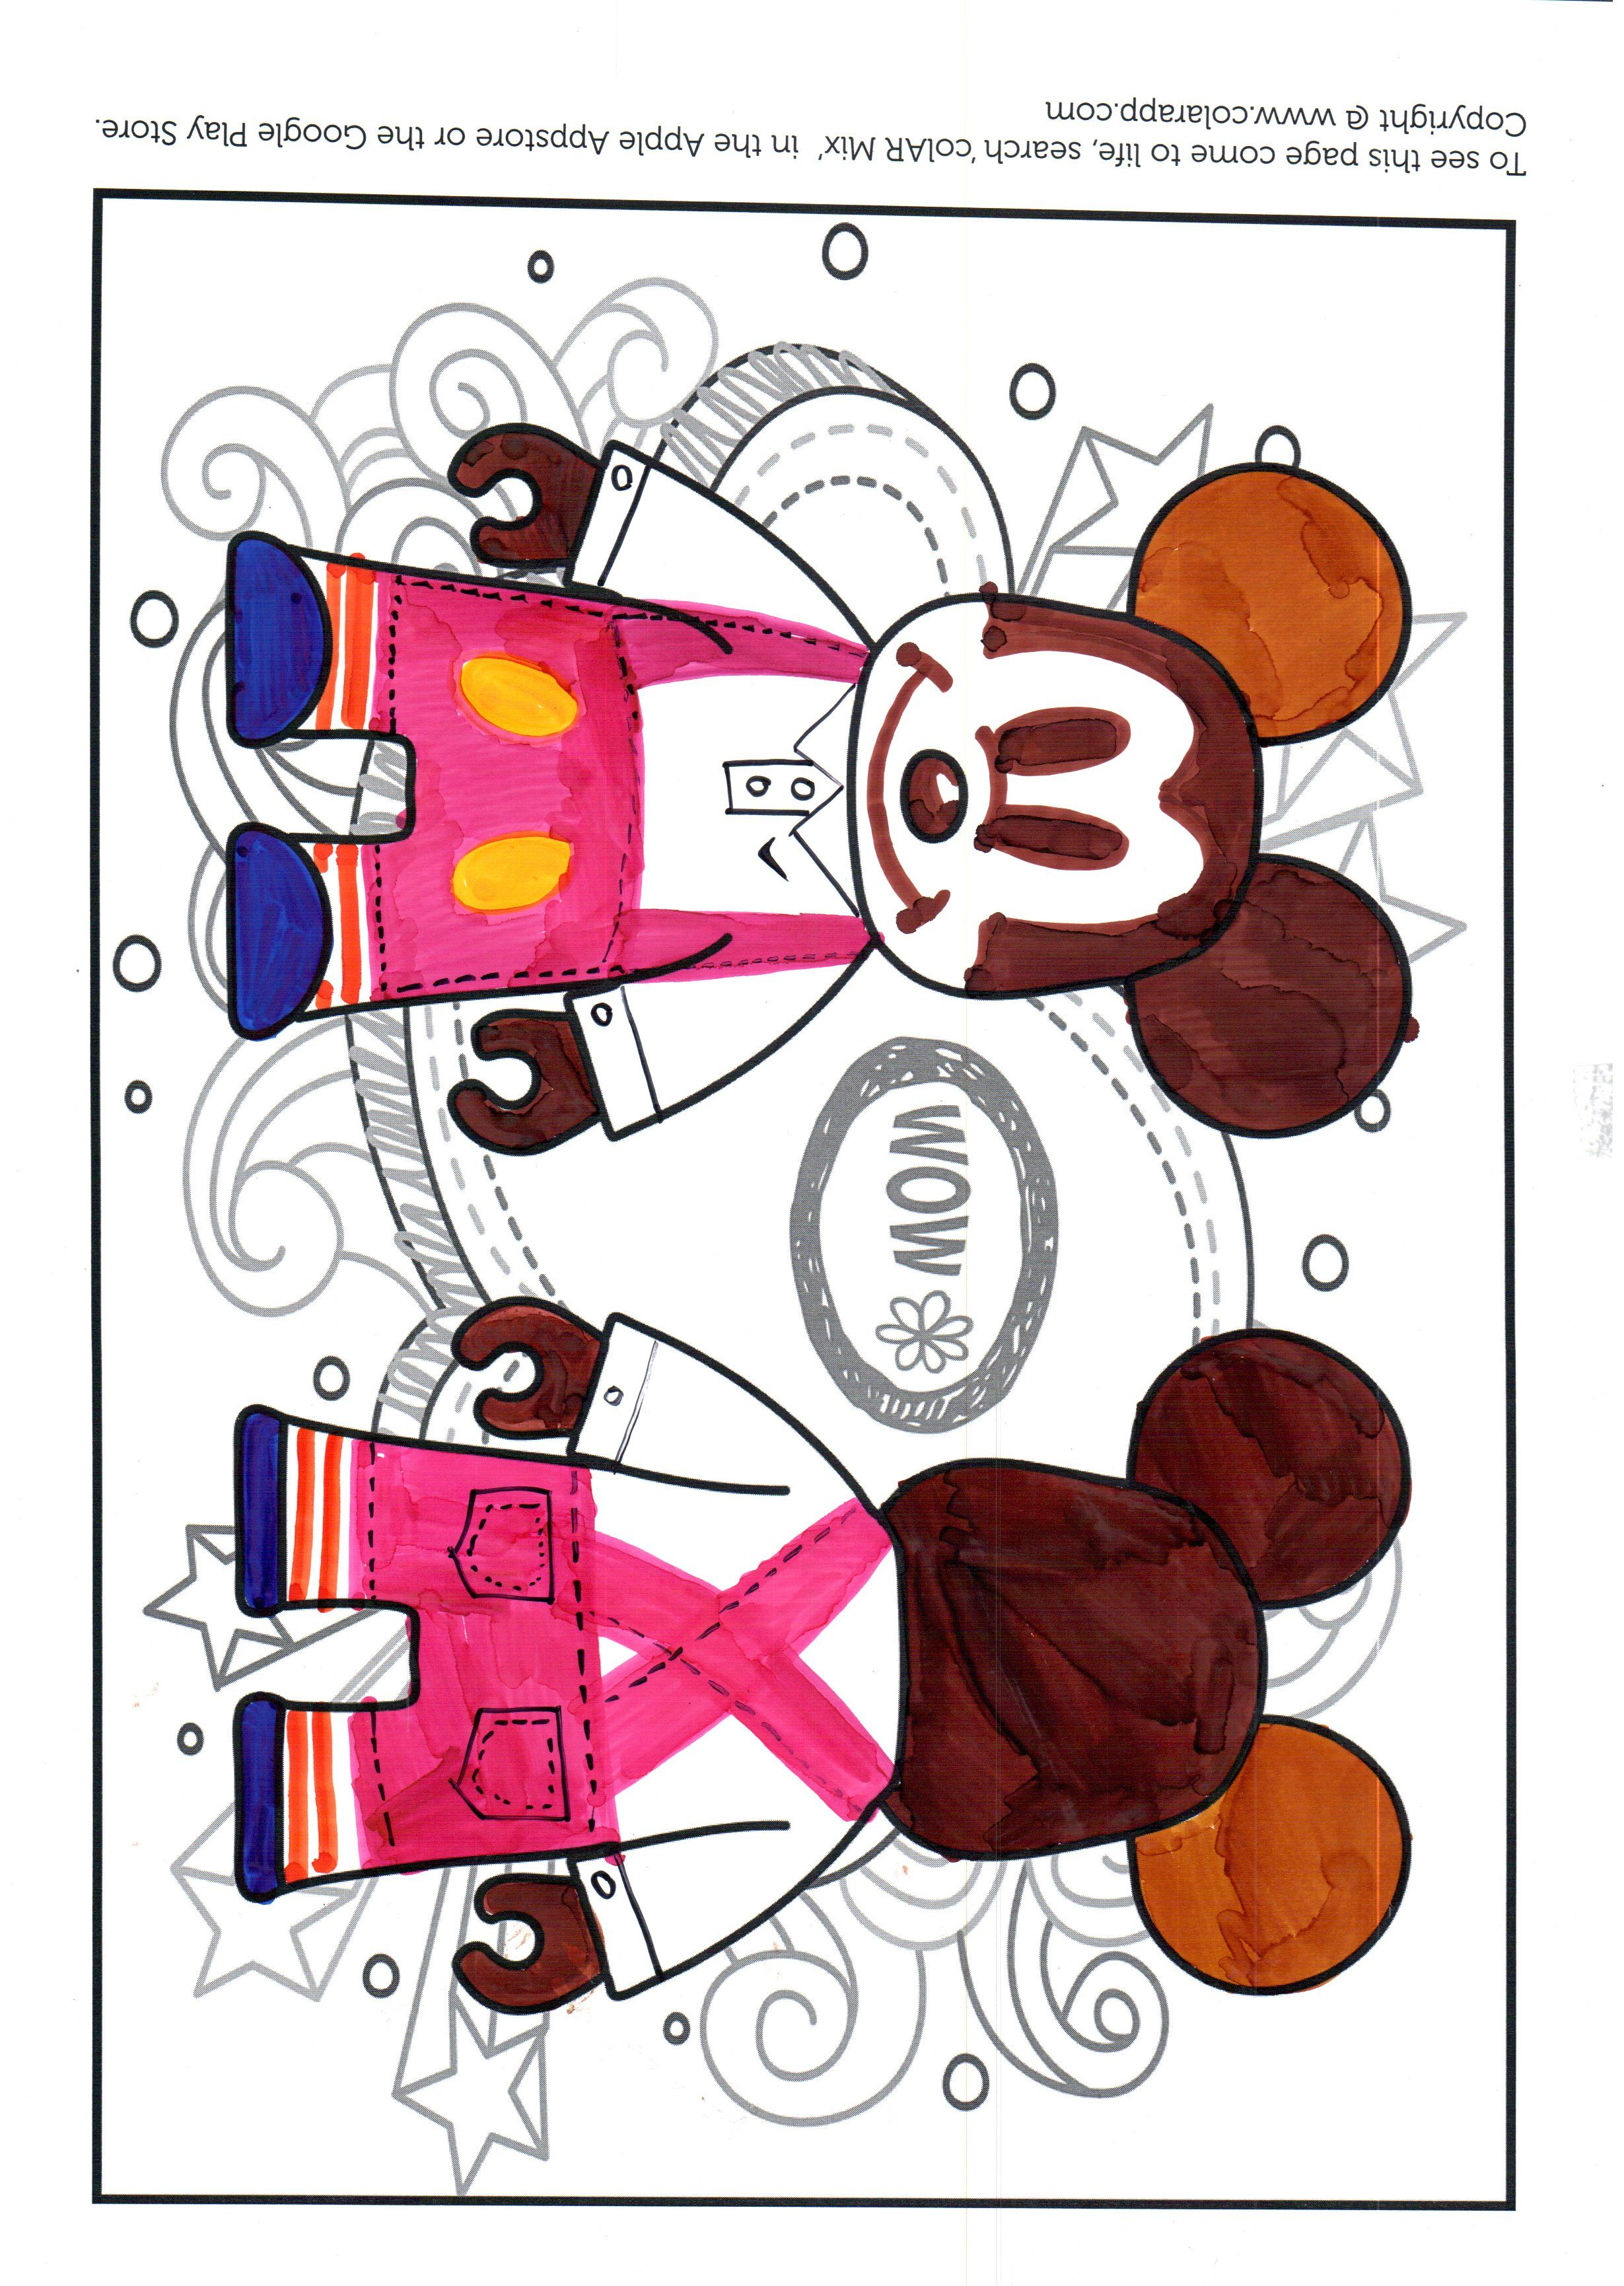 Coloring pages for quiver - Coloring Pages Done By Visitors At Gstar Event In Korea Www Colarapp Com Quiver Ar Bear Page Pinterest Gstar Quiver And Bears